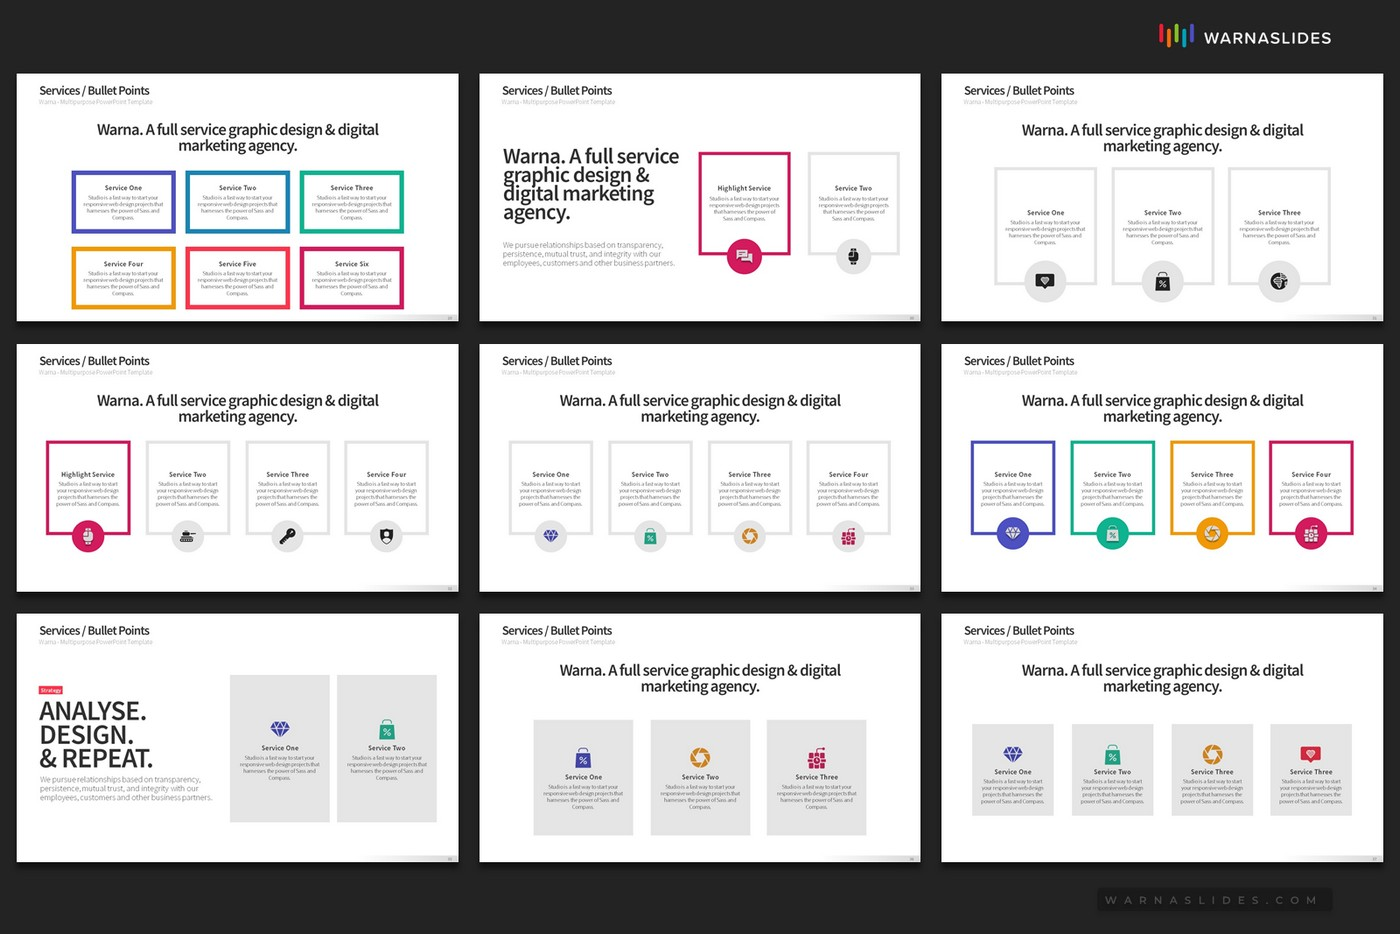 Services-SEO-Management-Bullet-Points-PowerPoint-Template-for-Business-Pitch-Deck-Professional-Creative-PowerPoint-Icons-009